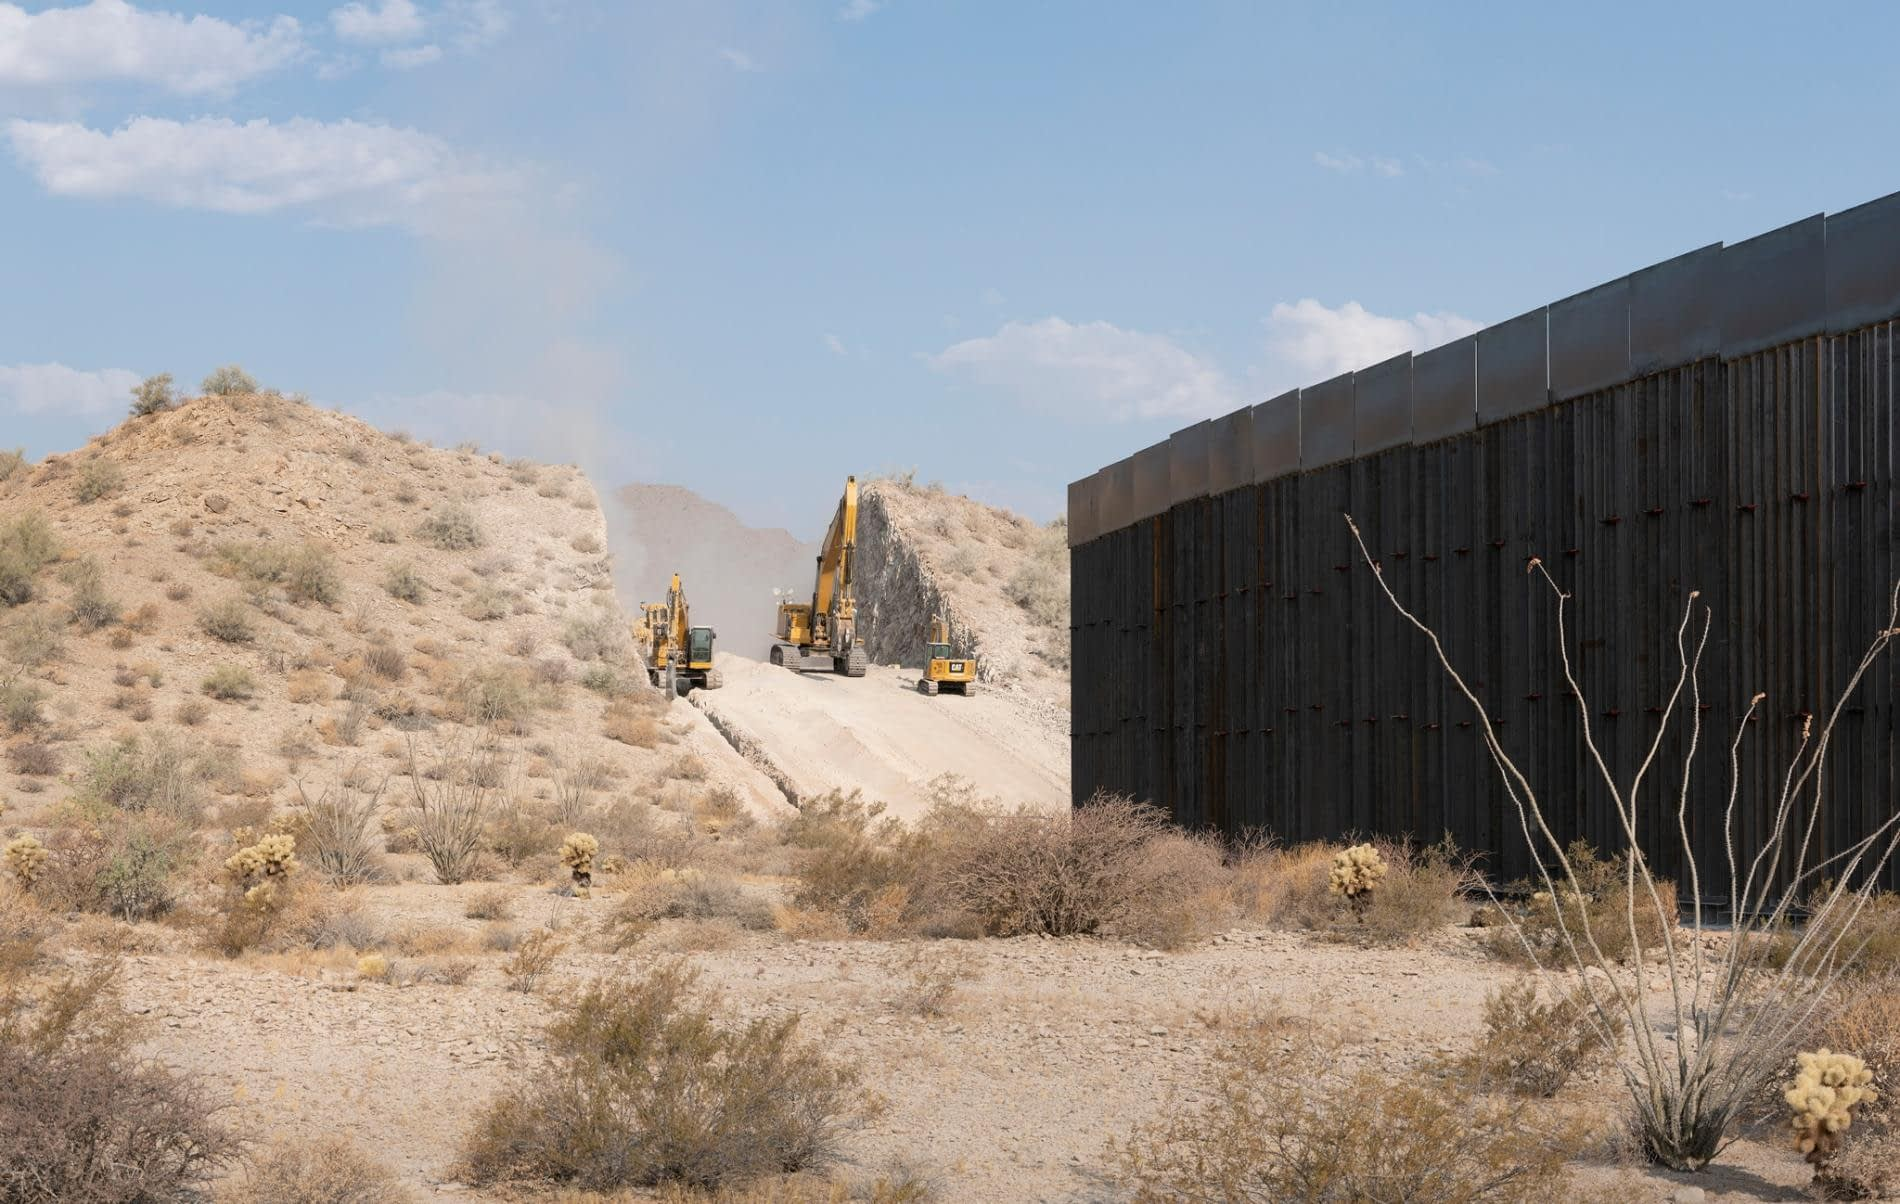 Terminating border-wall contracts would cost billions